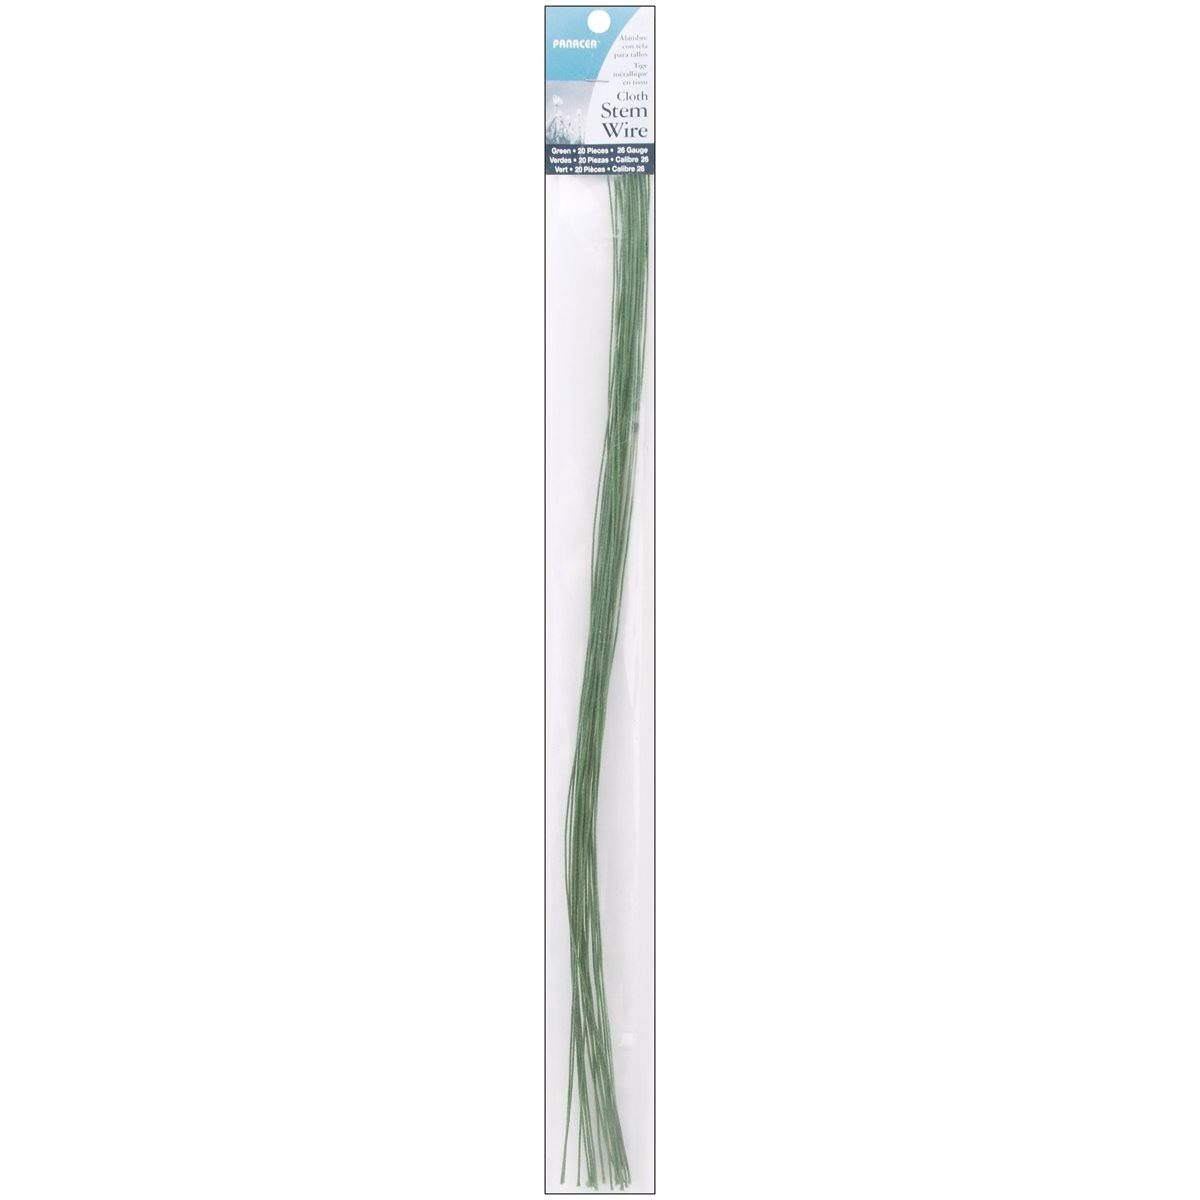 "Panacea Cloth Covered Stem Wire - Green, 26 Gauge, 18"", 20pcs"